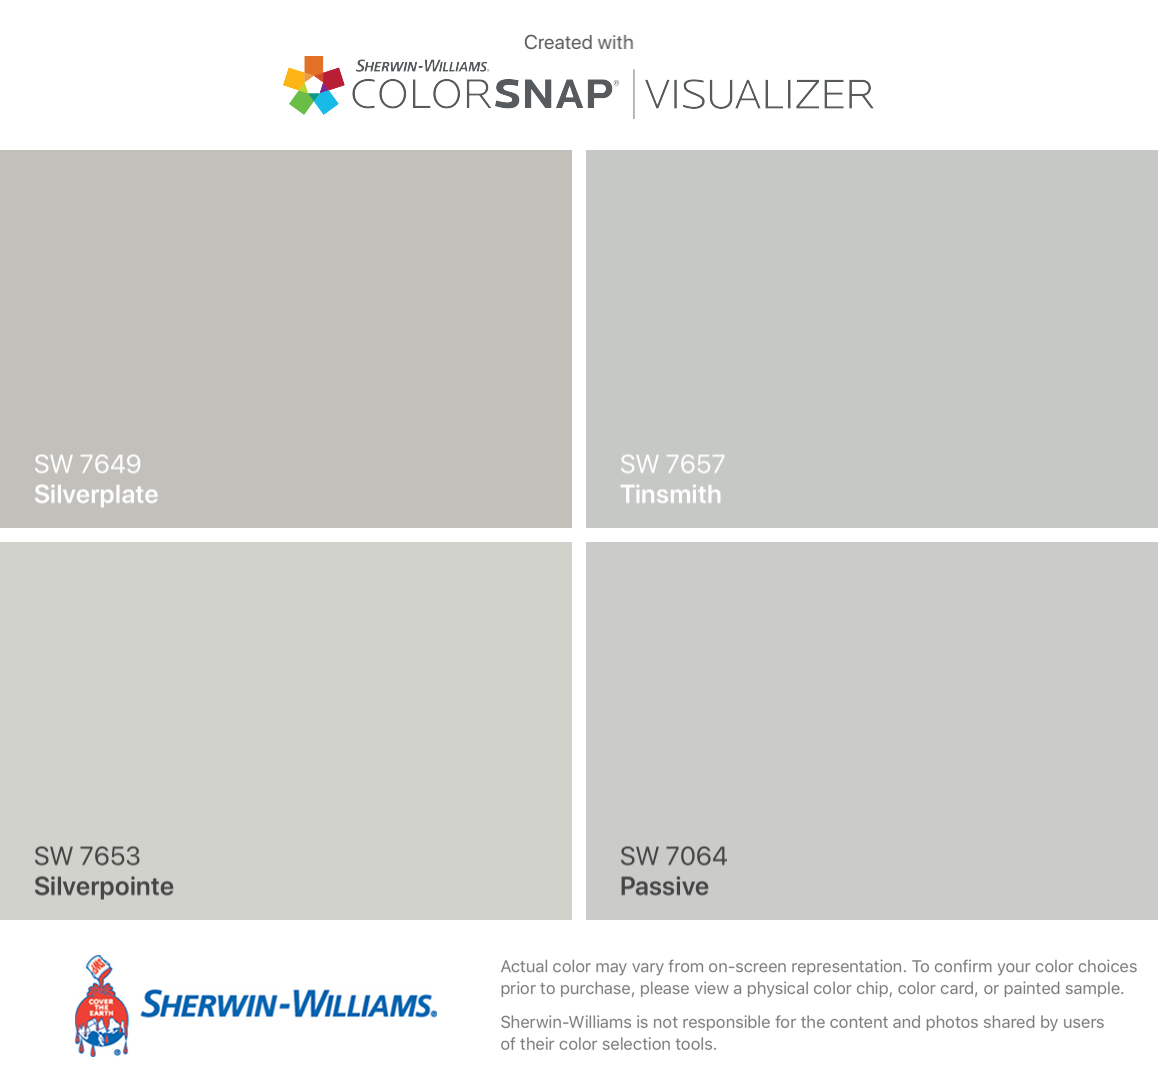 I Found These Colors With Colorsnap Visualizer For Iphone By Sherwin Williams Silv Interior Paint Colors Schemes Paint Colors For Home Choosing Paint Colours